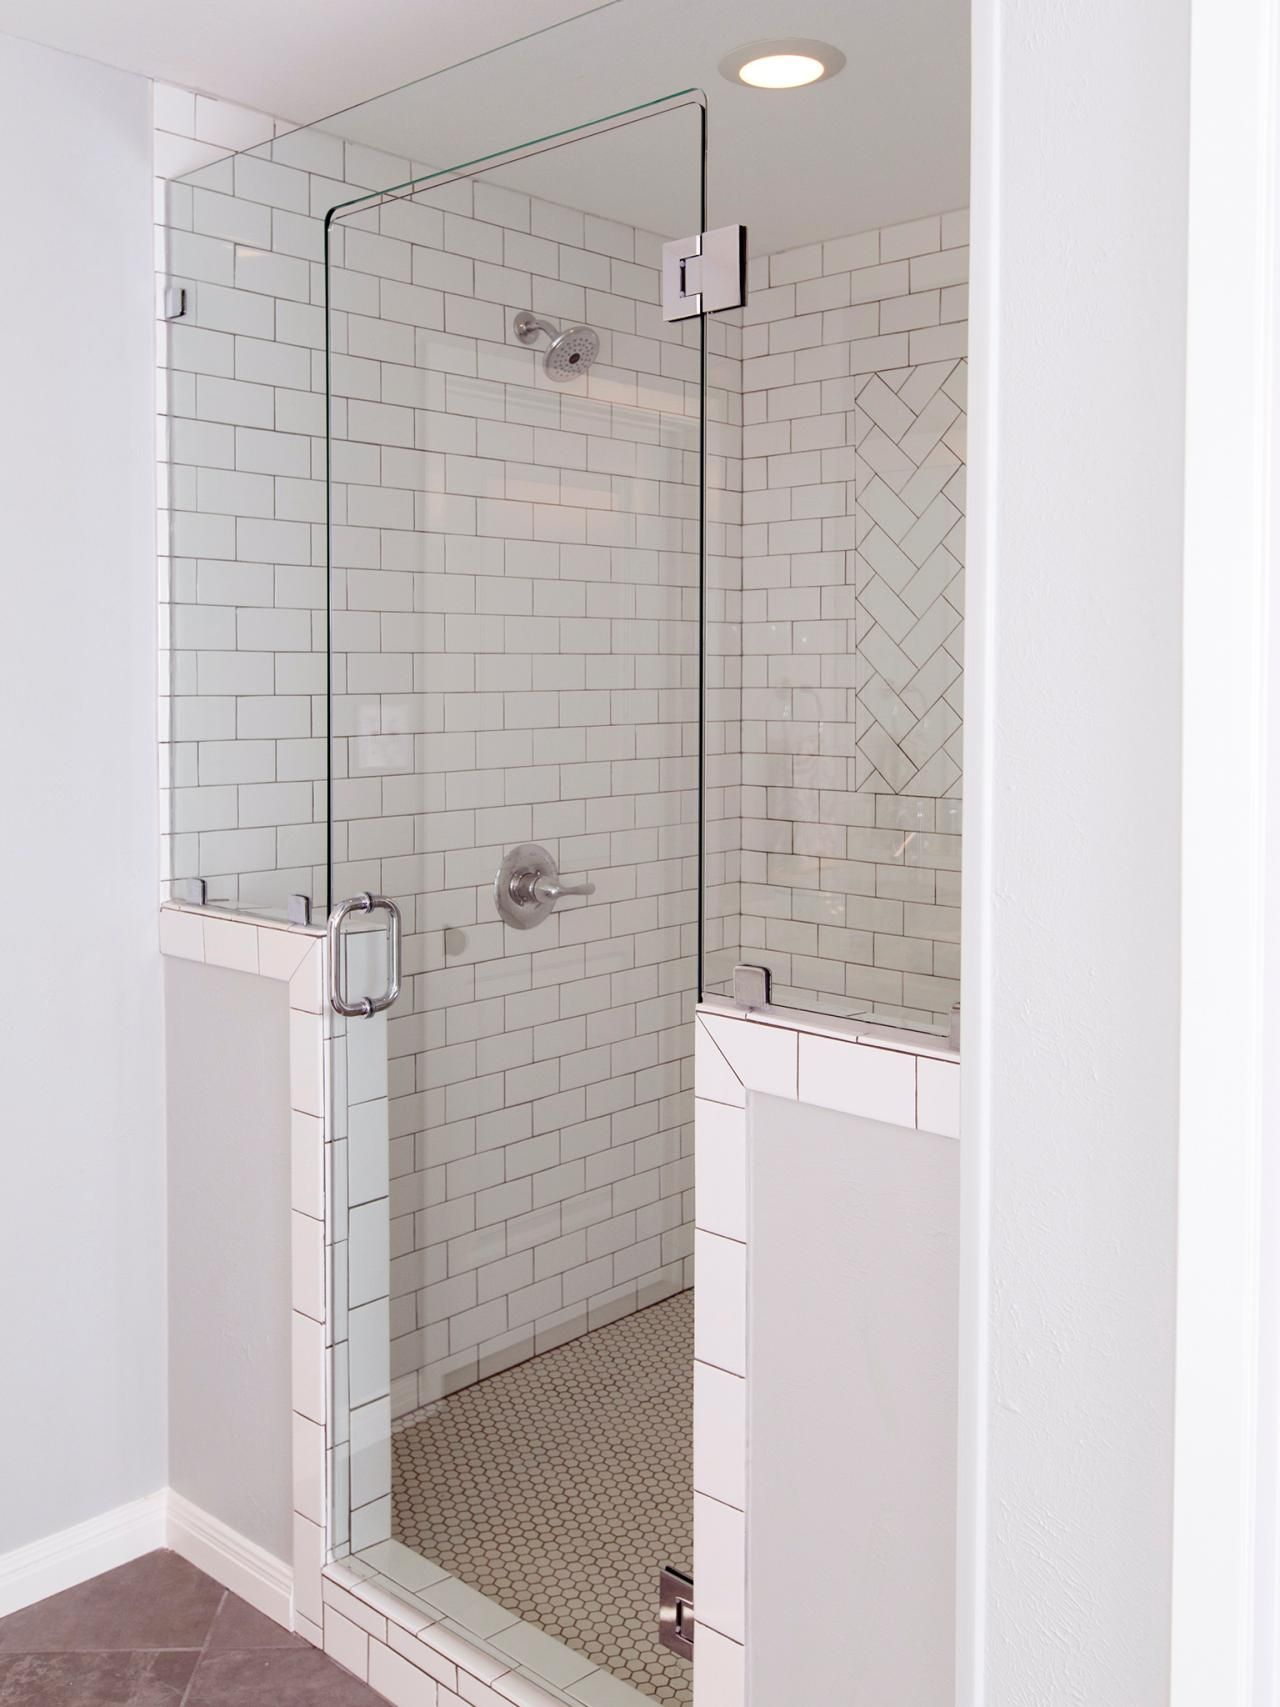 Shower Subway Tile white subway tile is an unexpected touch to this white